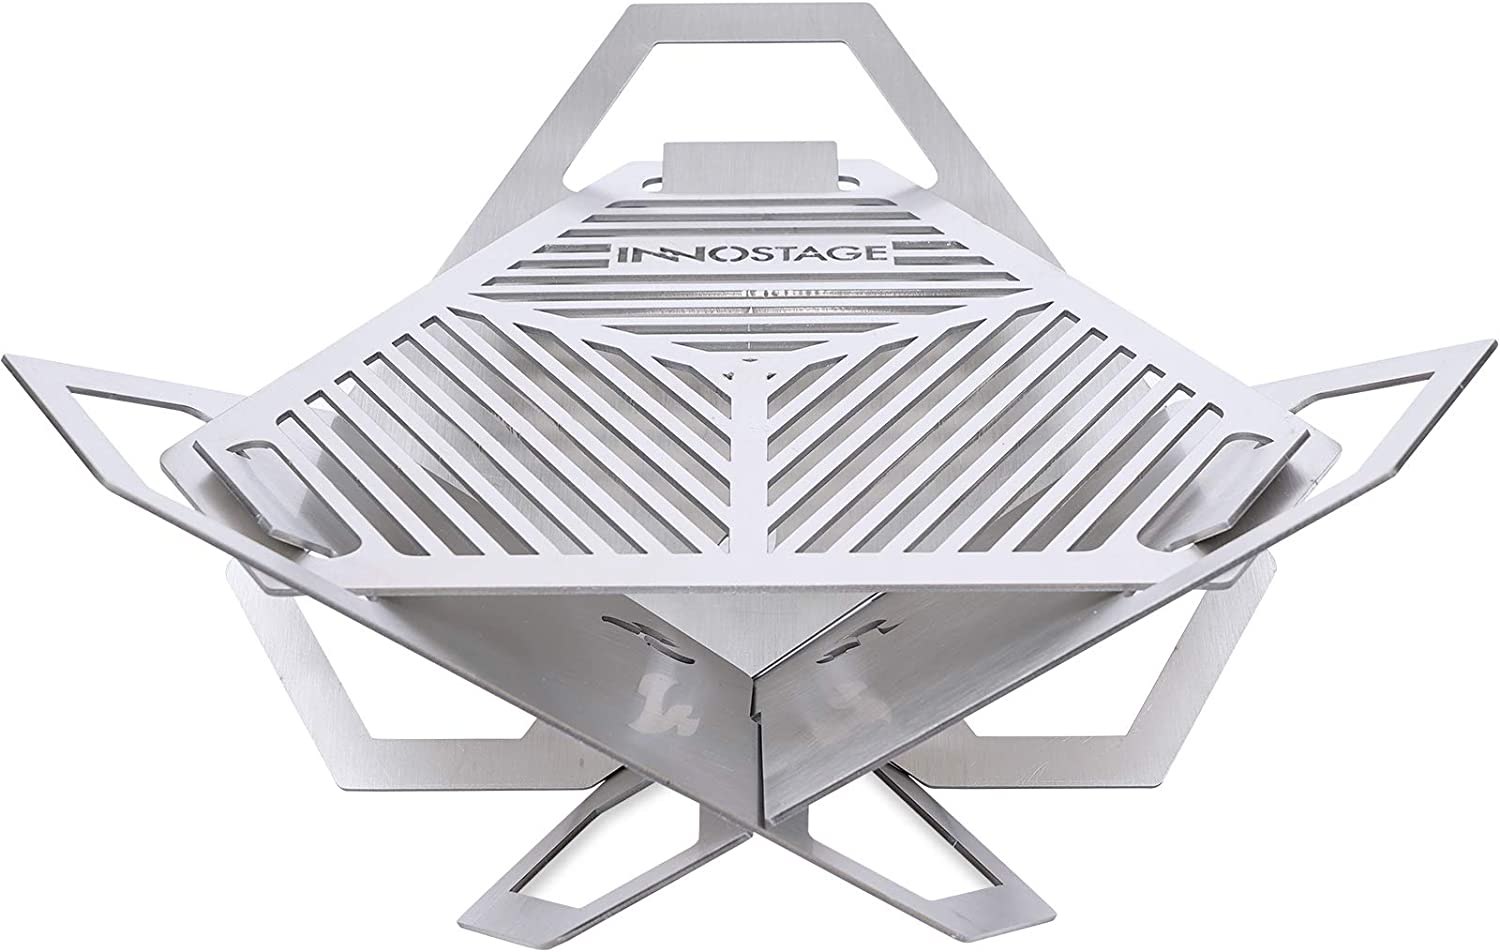 INNO STAGE Patented Mini Fire Pit Charcoal Grill, Stainless Steel Barbecue Firepit, Portable Cross BBQ Grill for Backpacking